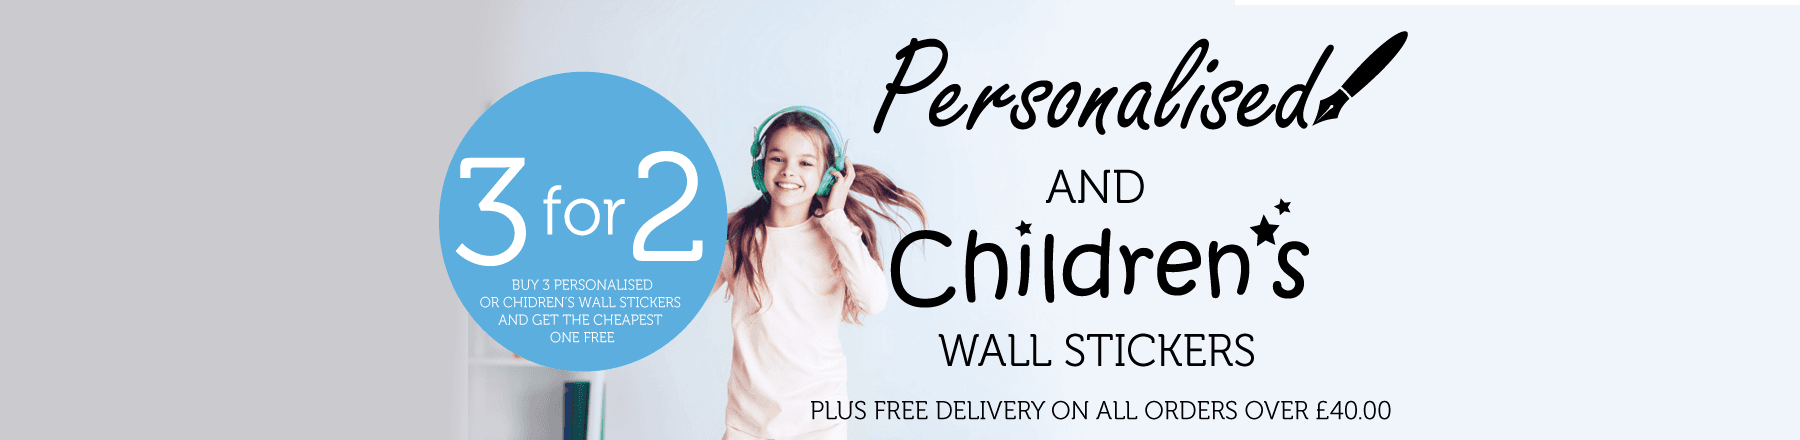 Children's 3 for 2 Banner